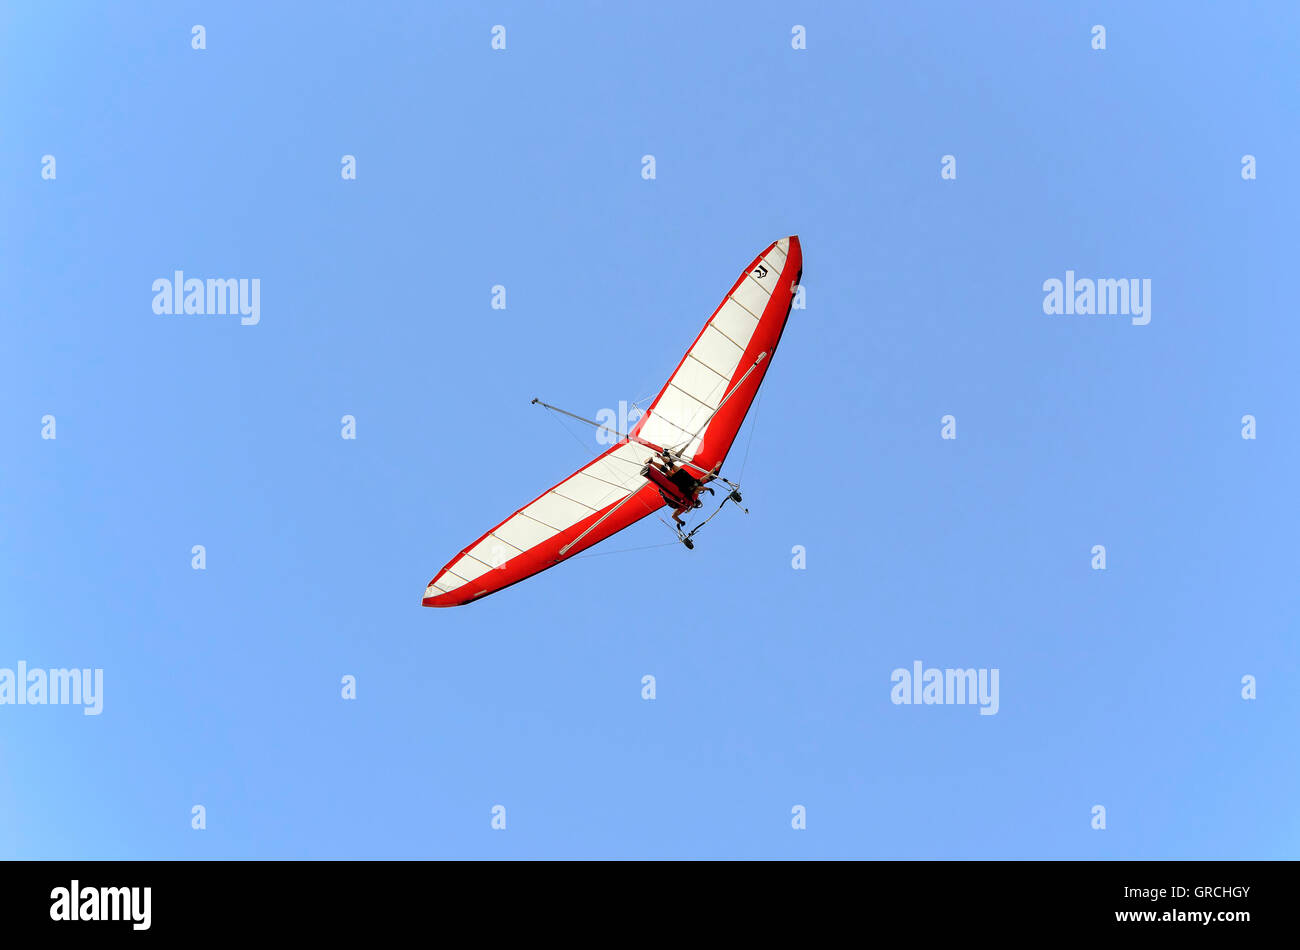 Delta Wing Glider Stock Photos & Delta Wing Glider Stock